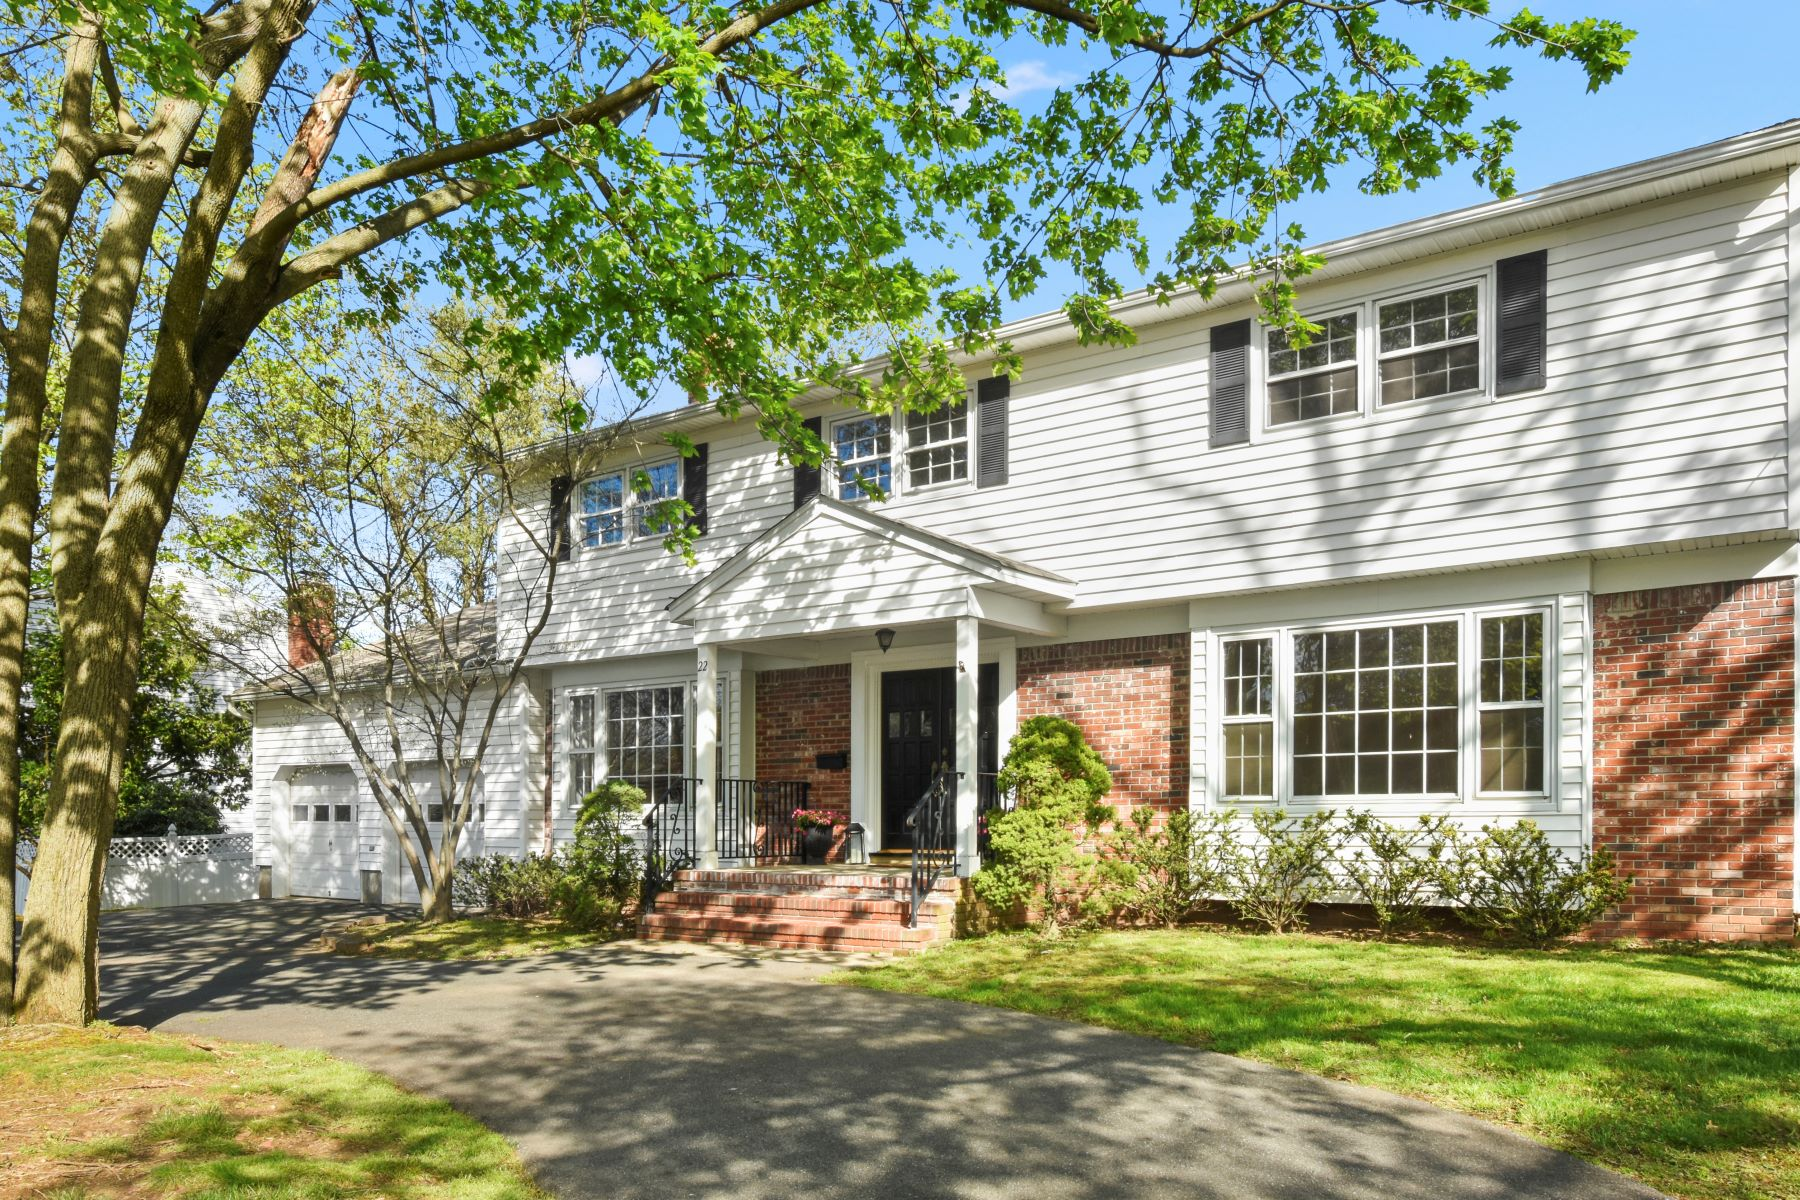 Single Family Homes for Sale at Stately Colonial 22 Ridgedale Avenue Florham Park, New Jersey 07932 United States